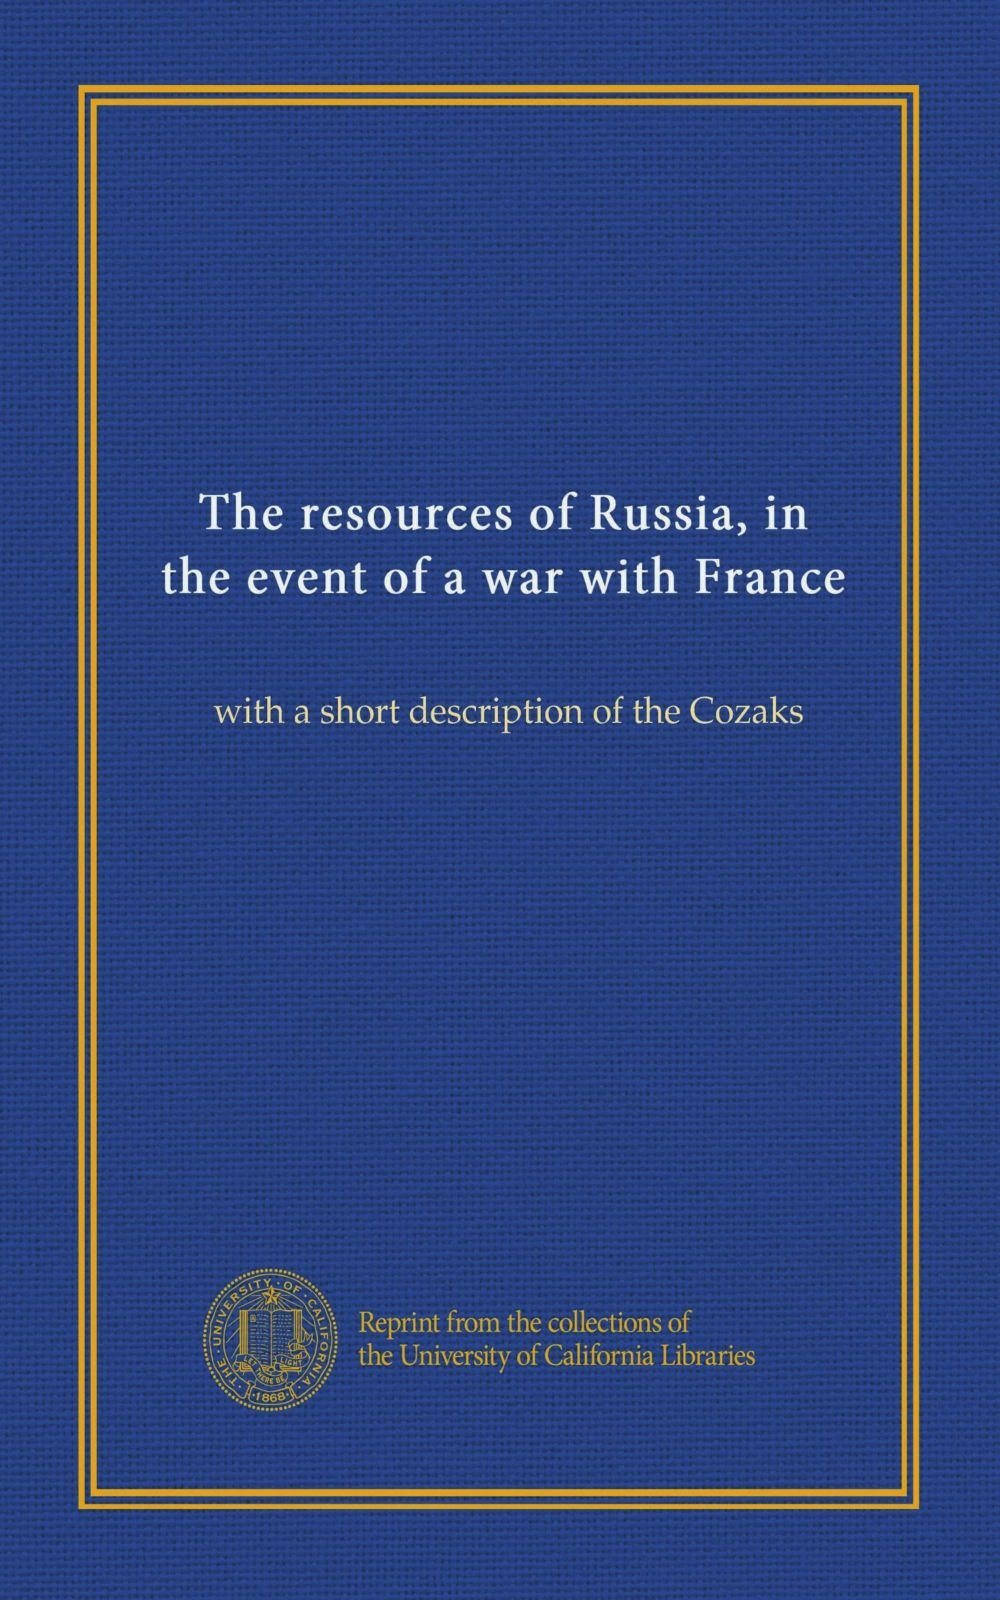 The resources of Russia, in the event of a war with France: with a short description of the Cozaks pdf